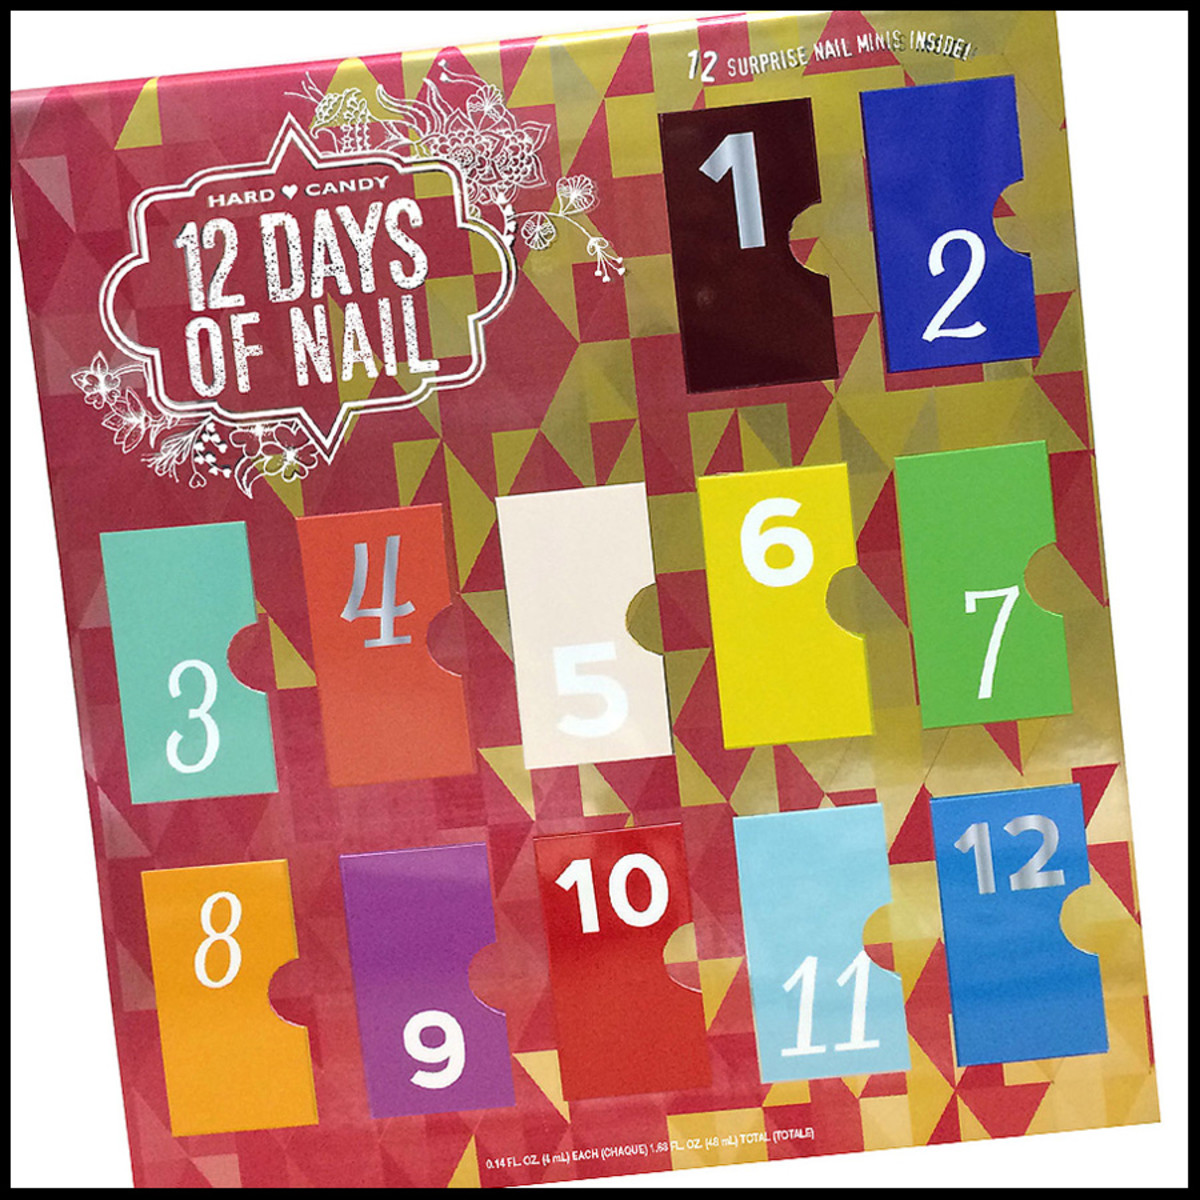 advent calendars 2014_Hard Candy 12 Days of Nail_pseudo advent calendar 2014